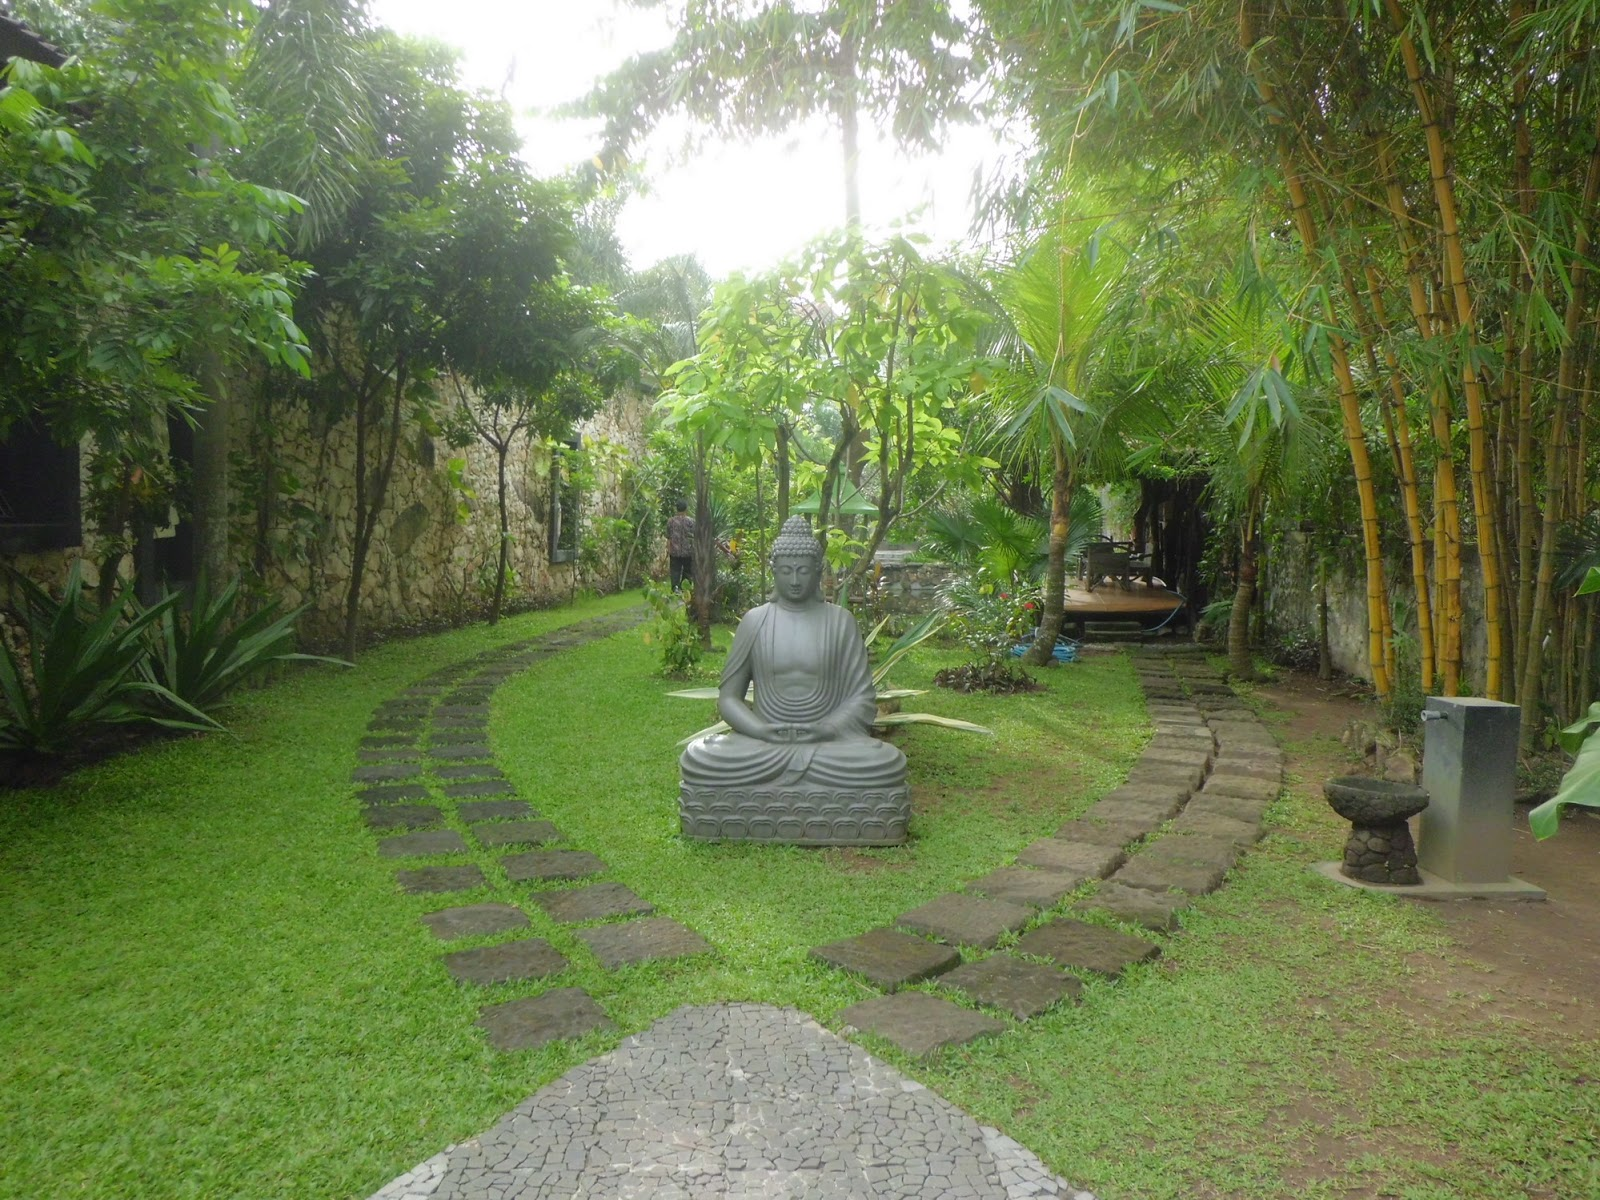 Pictures Of Beautiful Backyard Gardens : beautiful garden with buddhist sculpture these are three beautiful